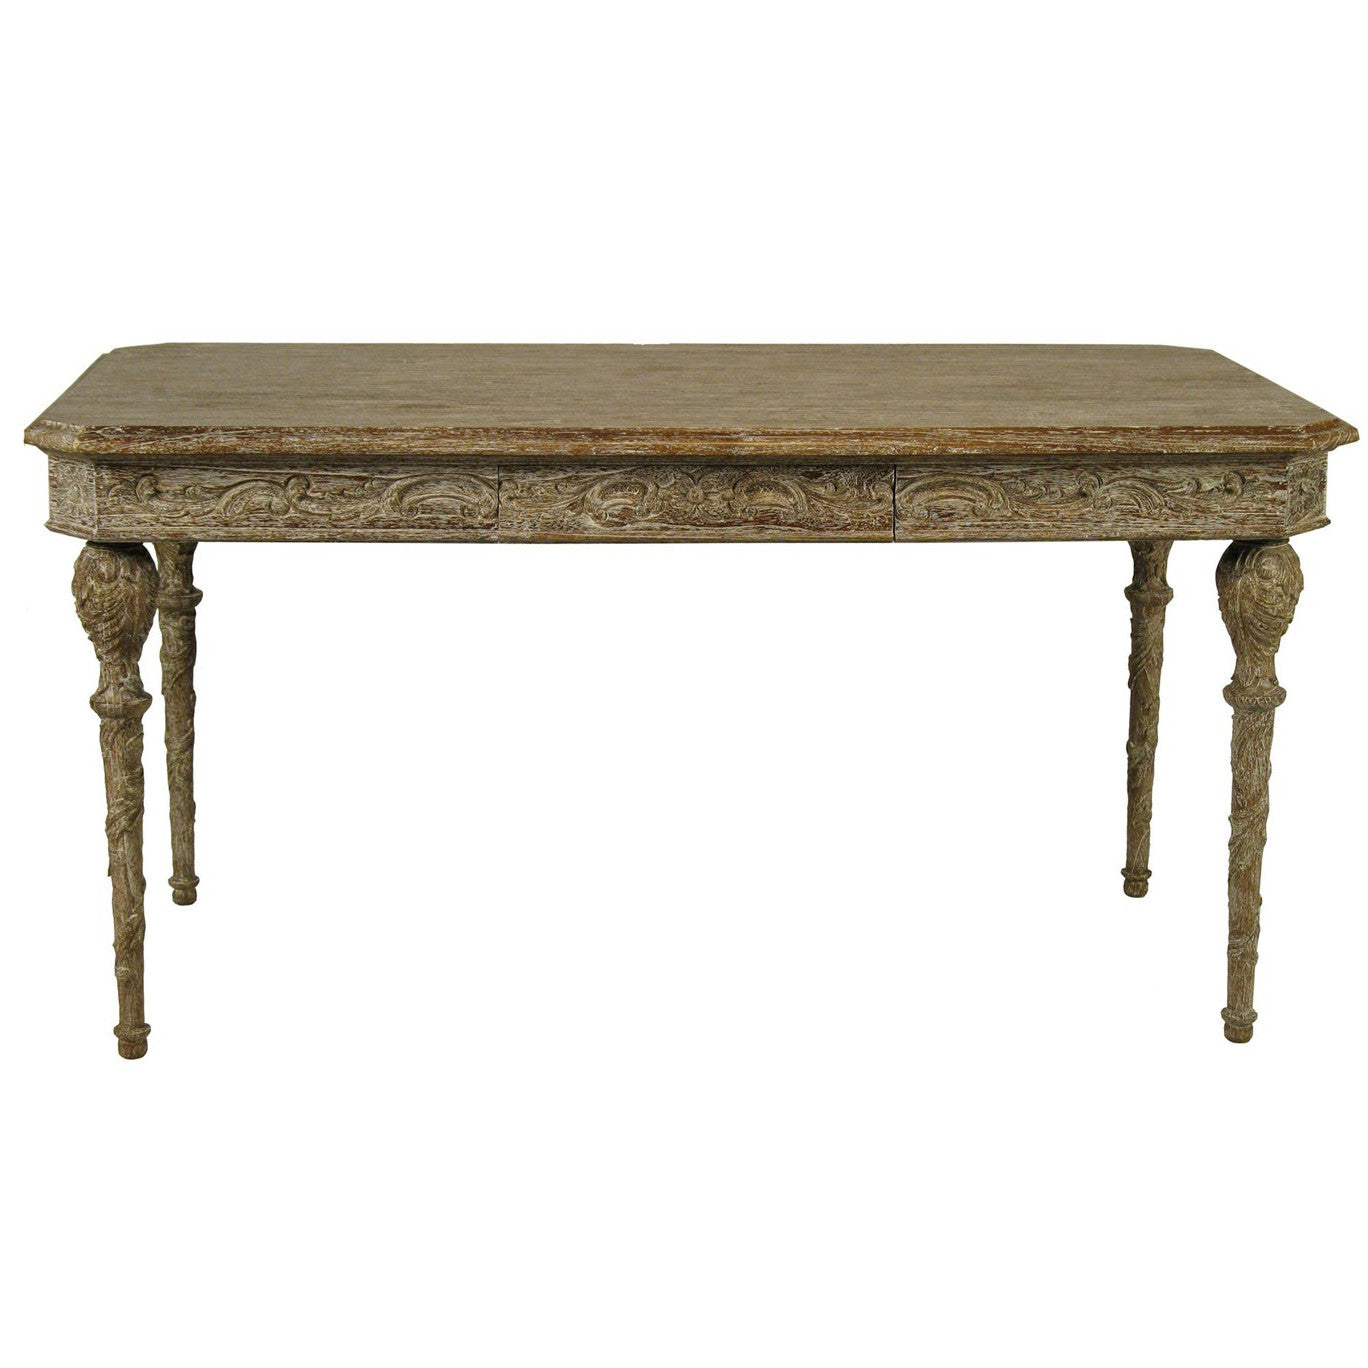 Noir - Paris Desk, Grey Wash